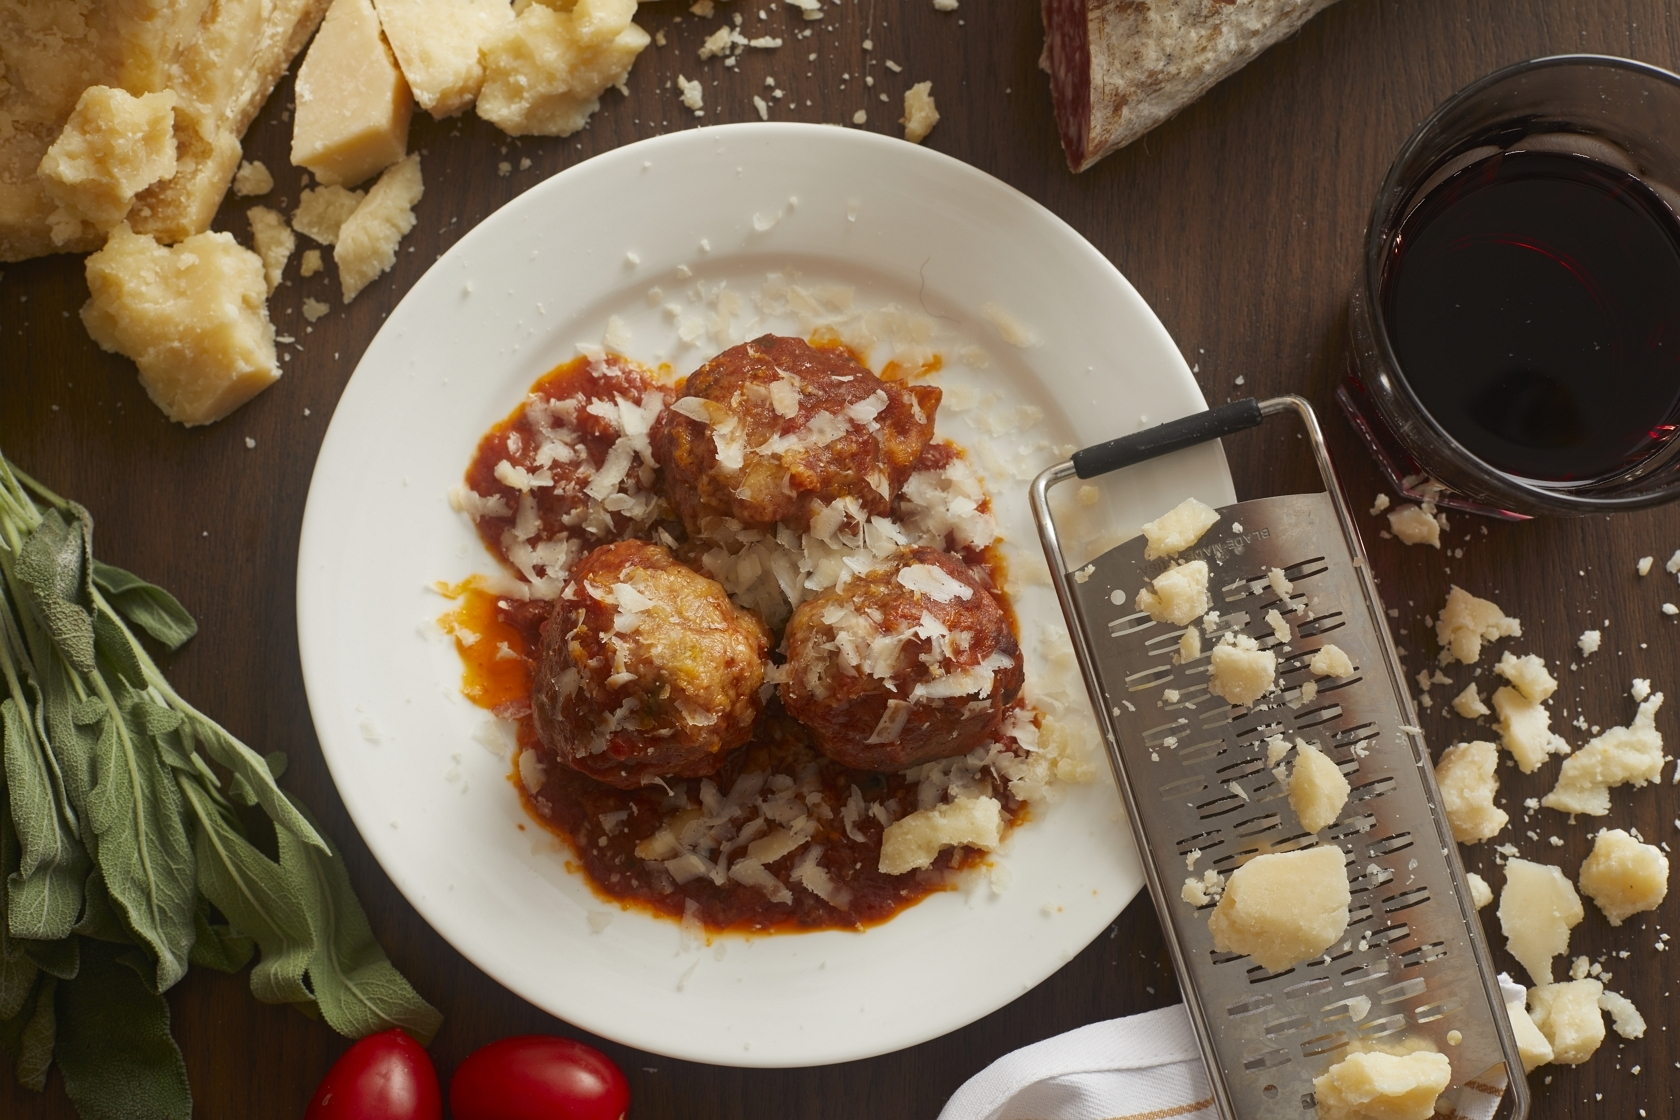 Pici's homemade meatballs